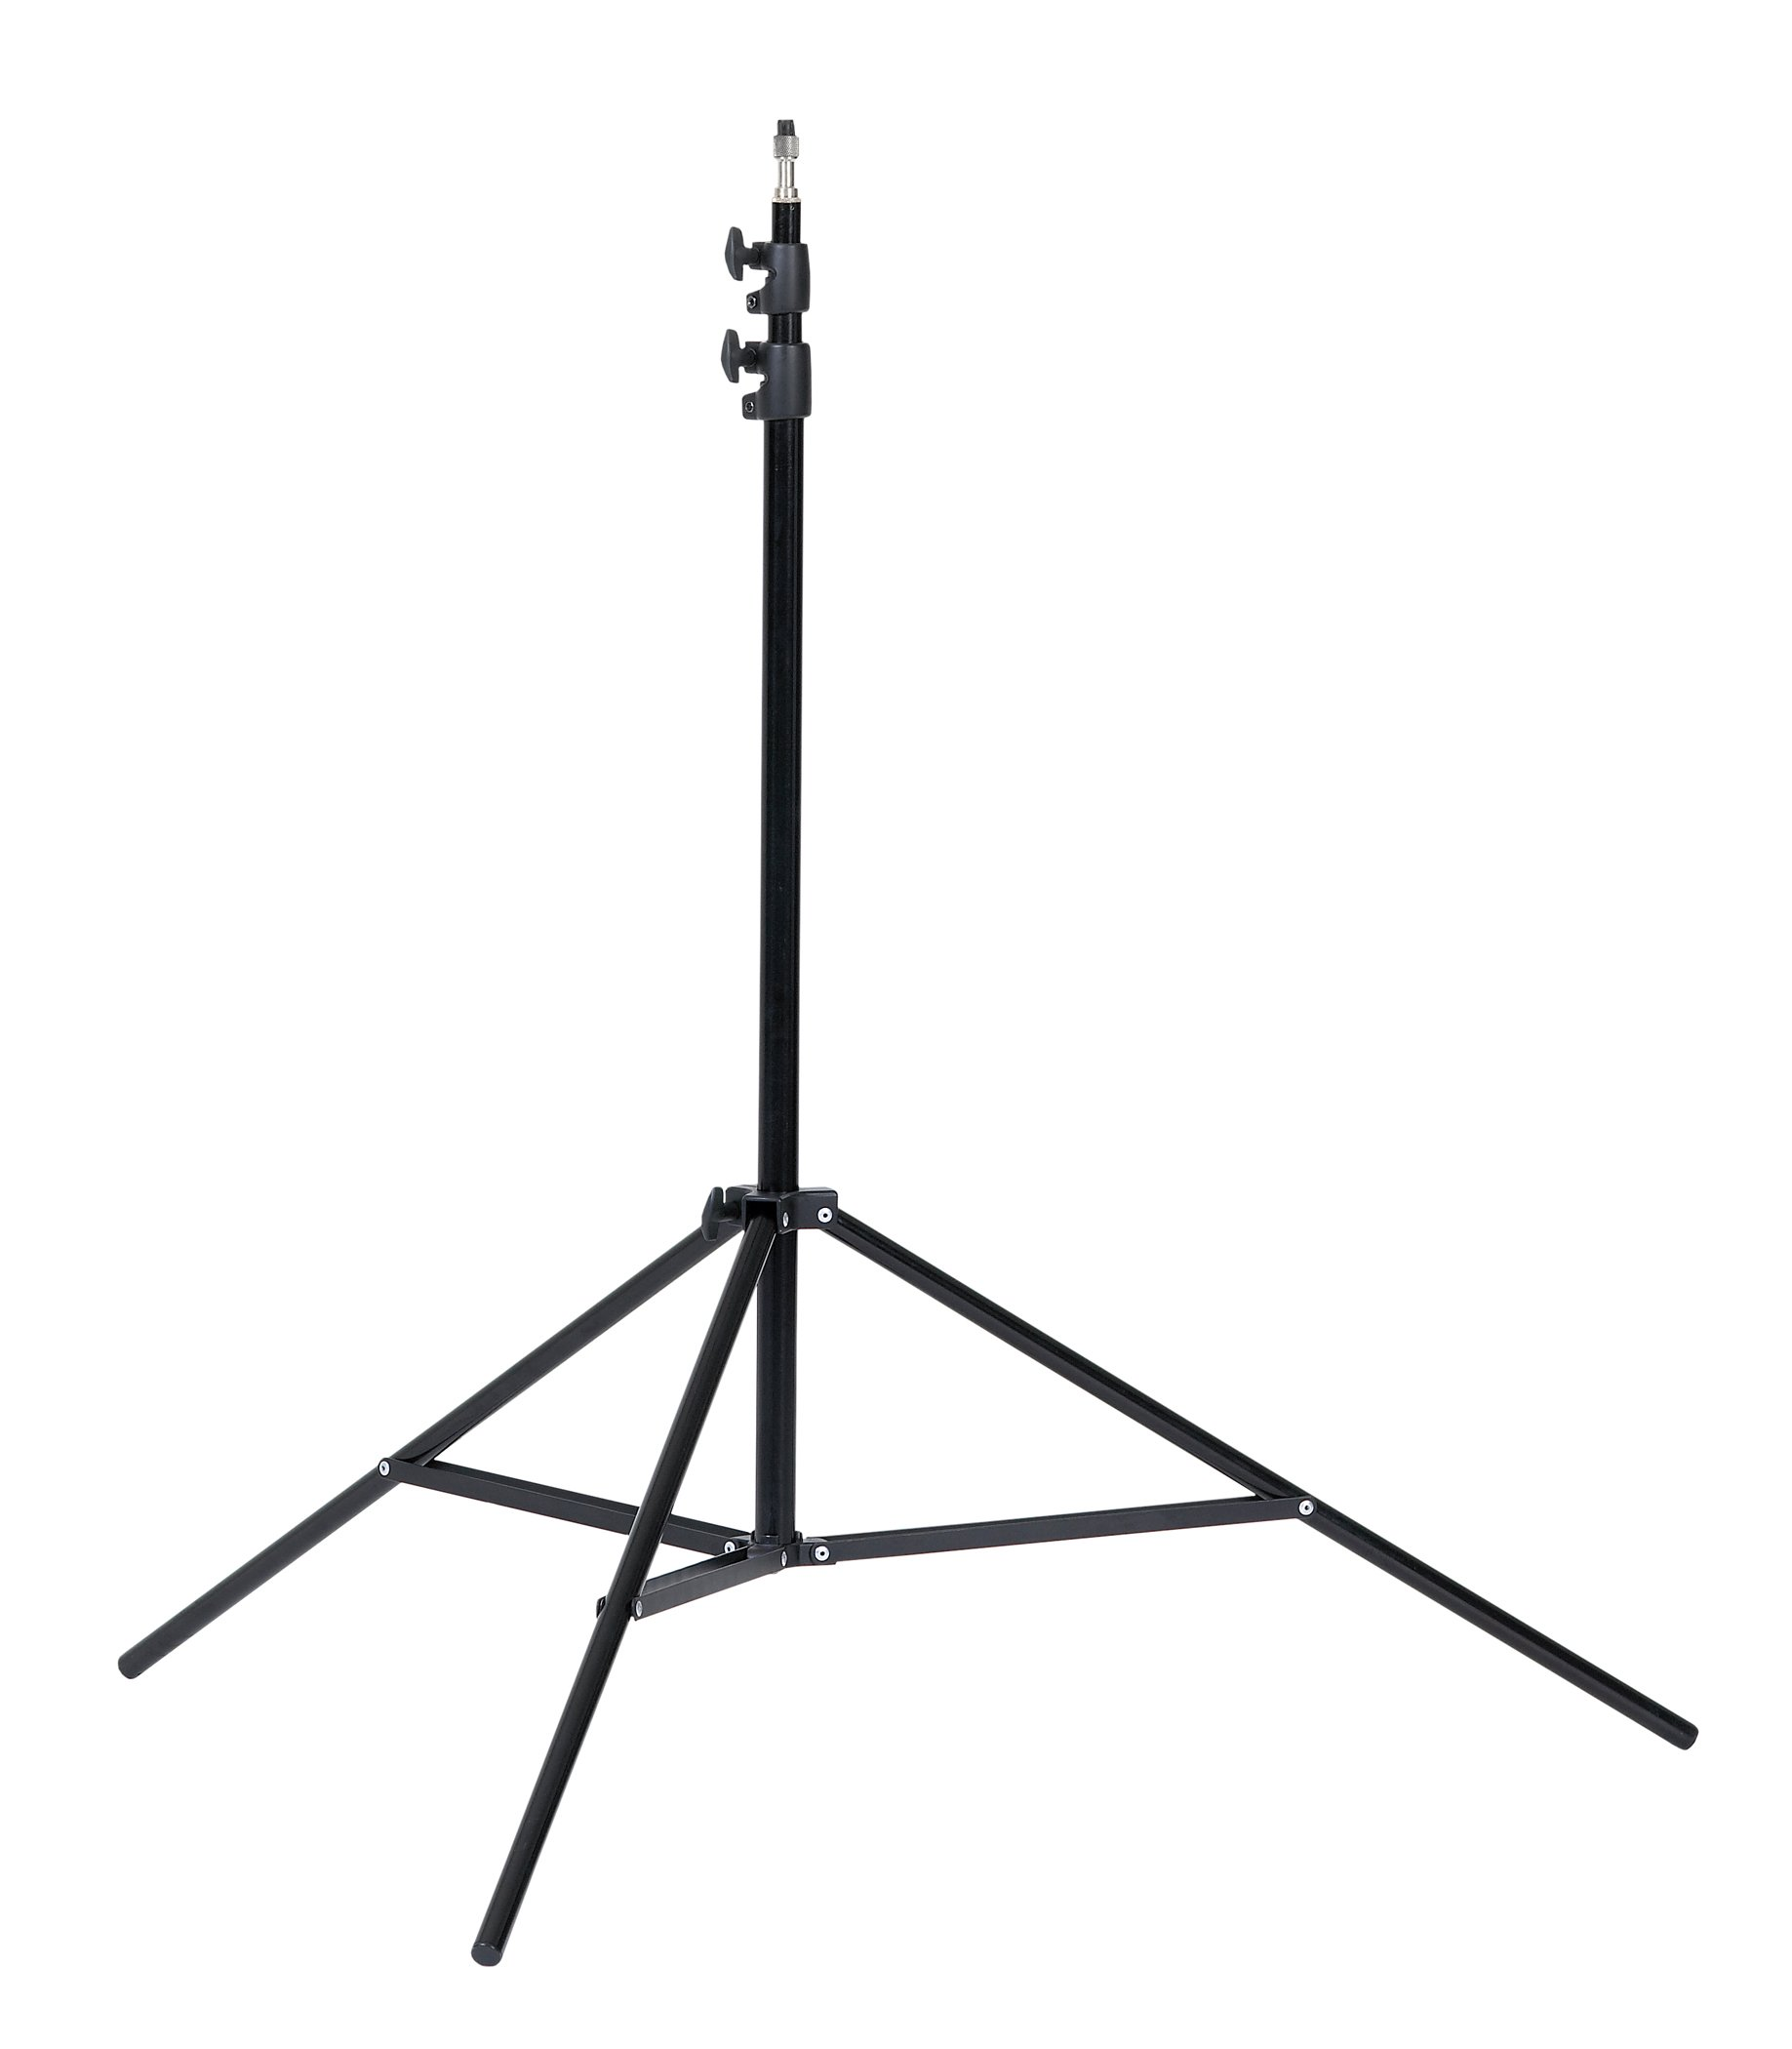 Creative Light 101102 LS38 3 Sections/8-Feet Stand (Black)